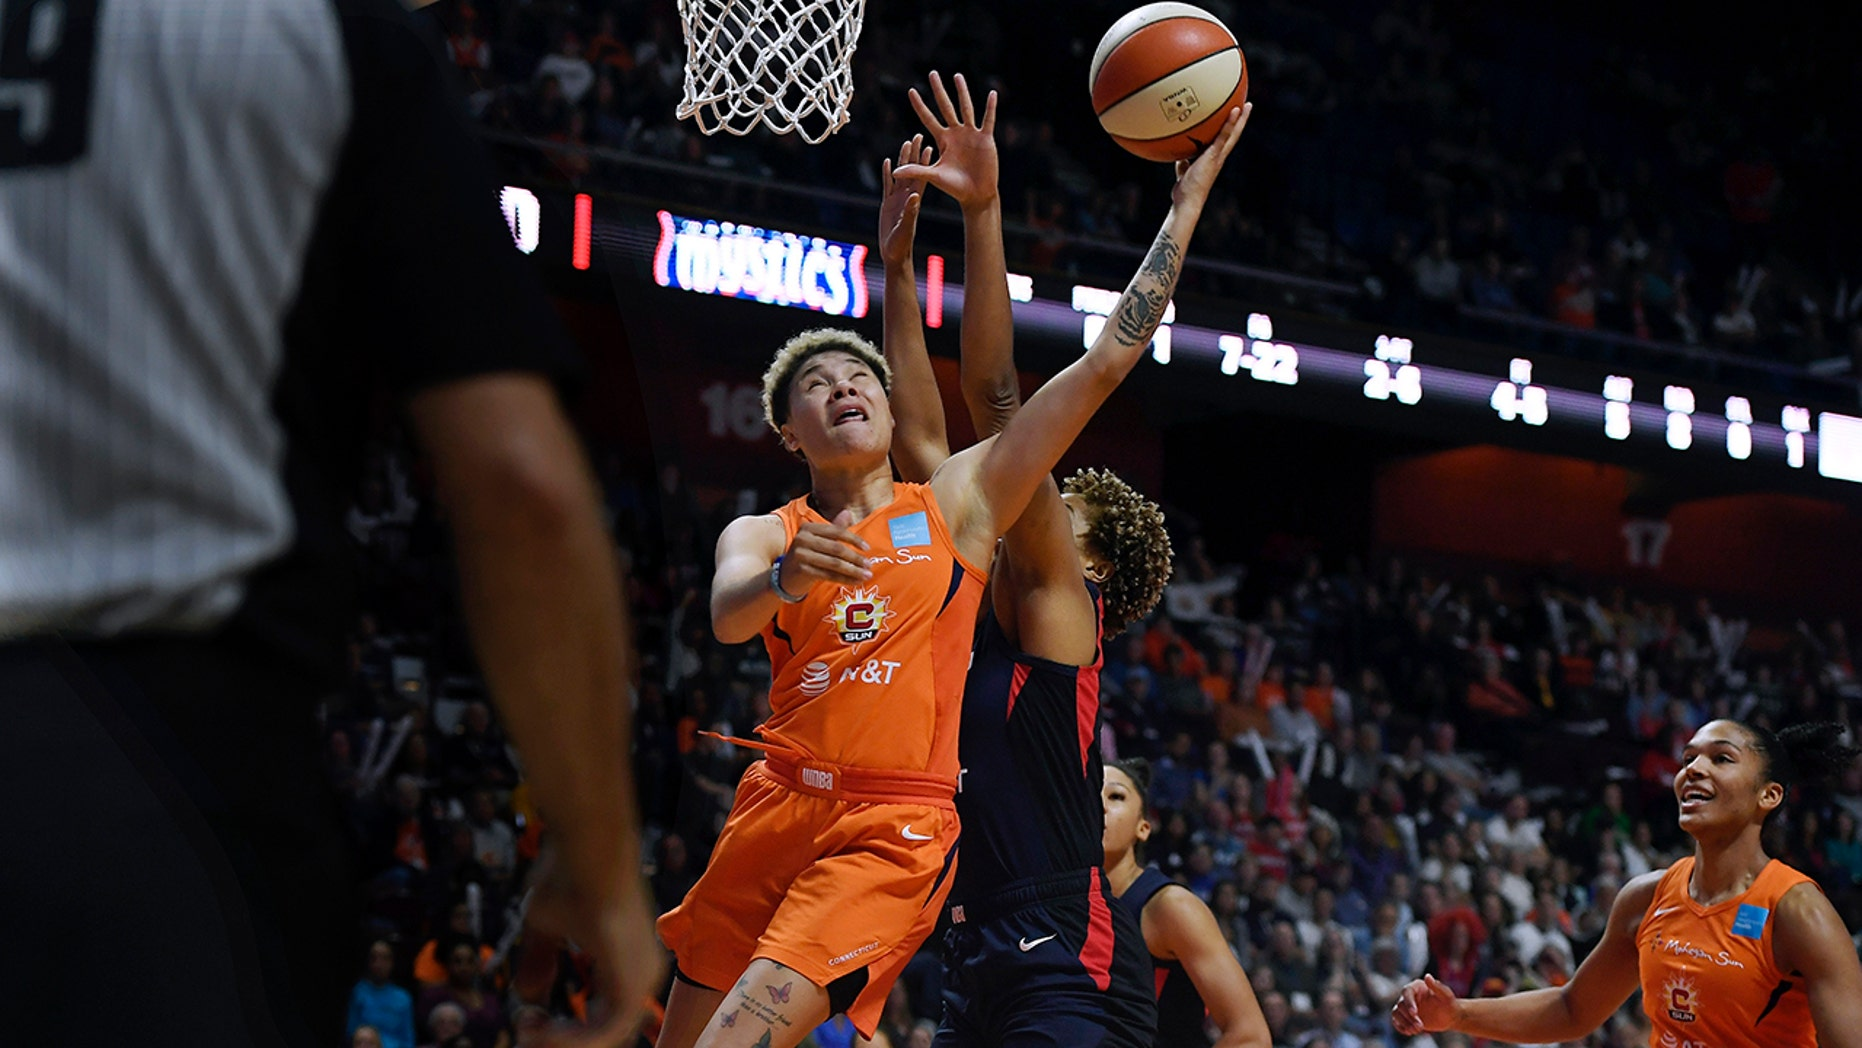 WNBA Finals: Washington Mystics beat Connecticut Sun for first title